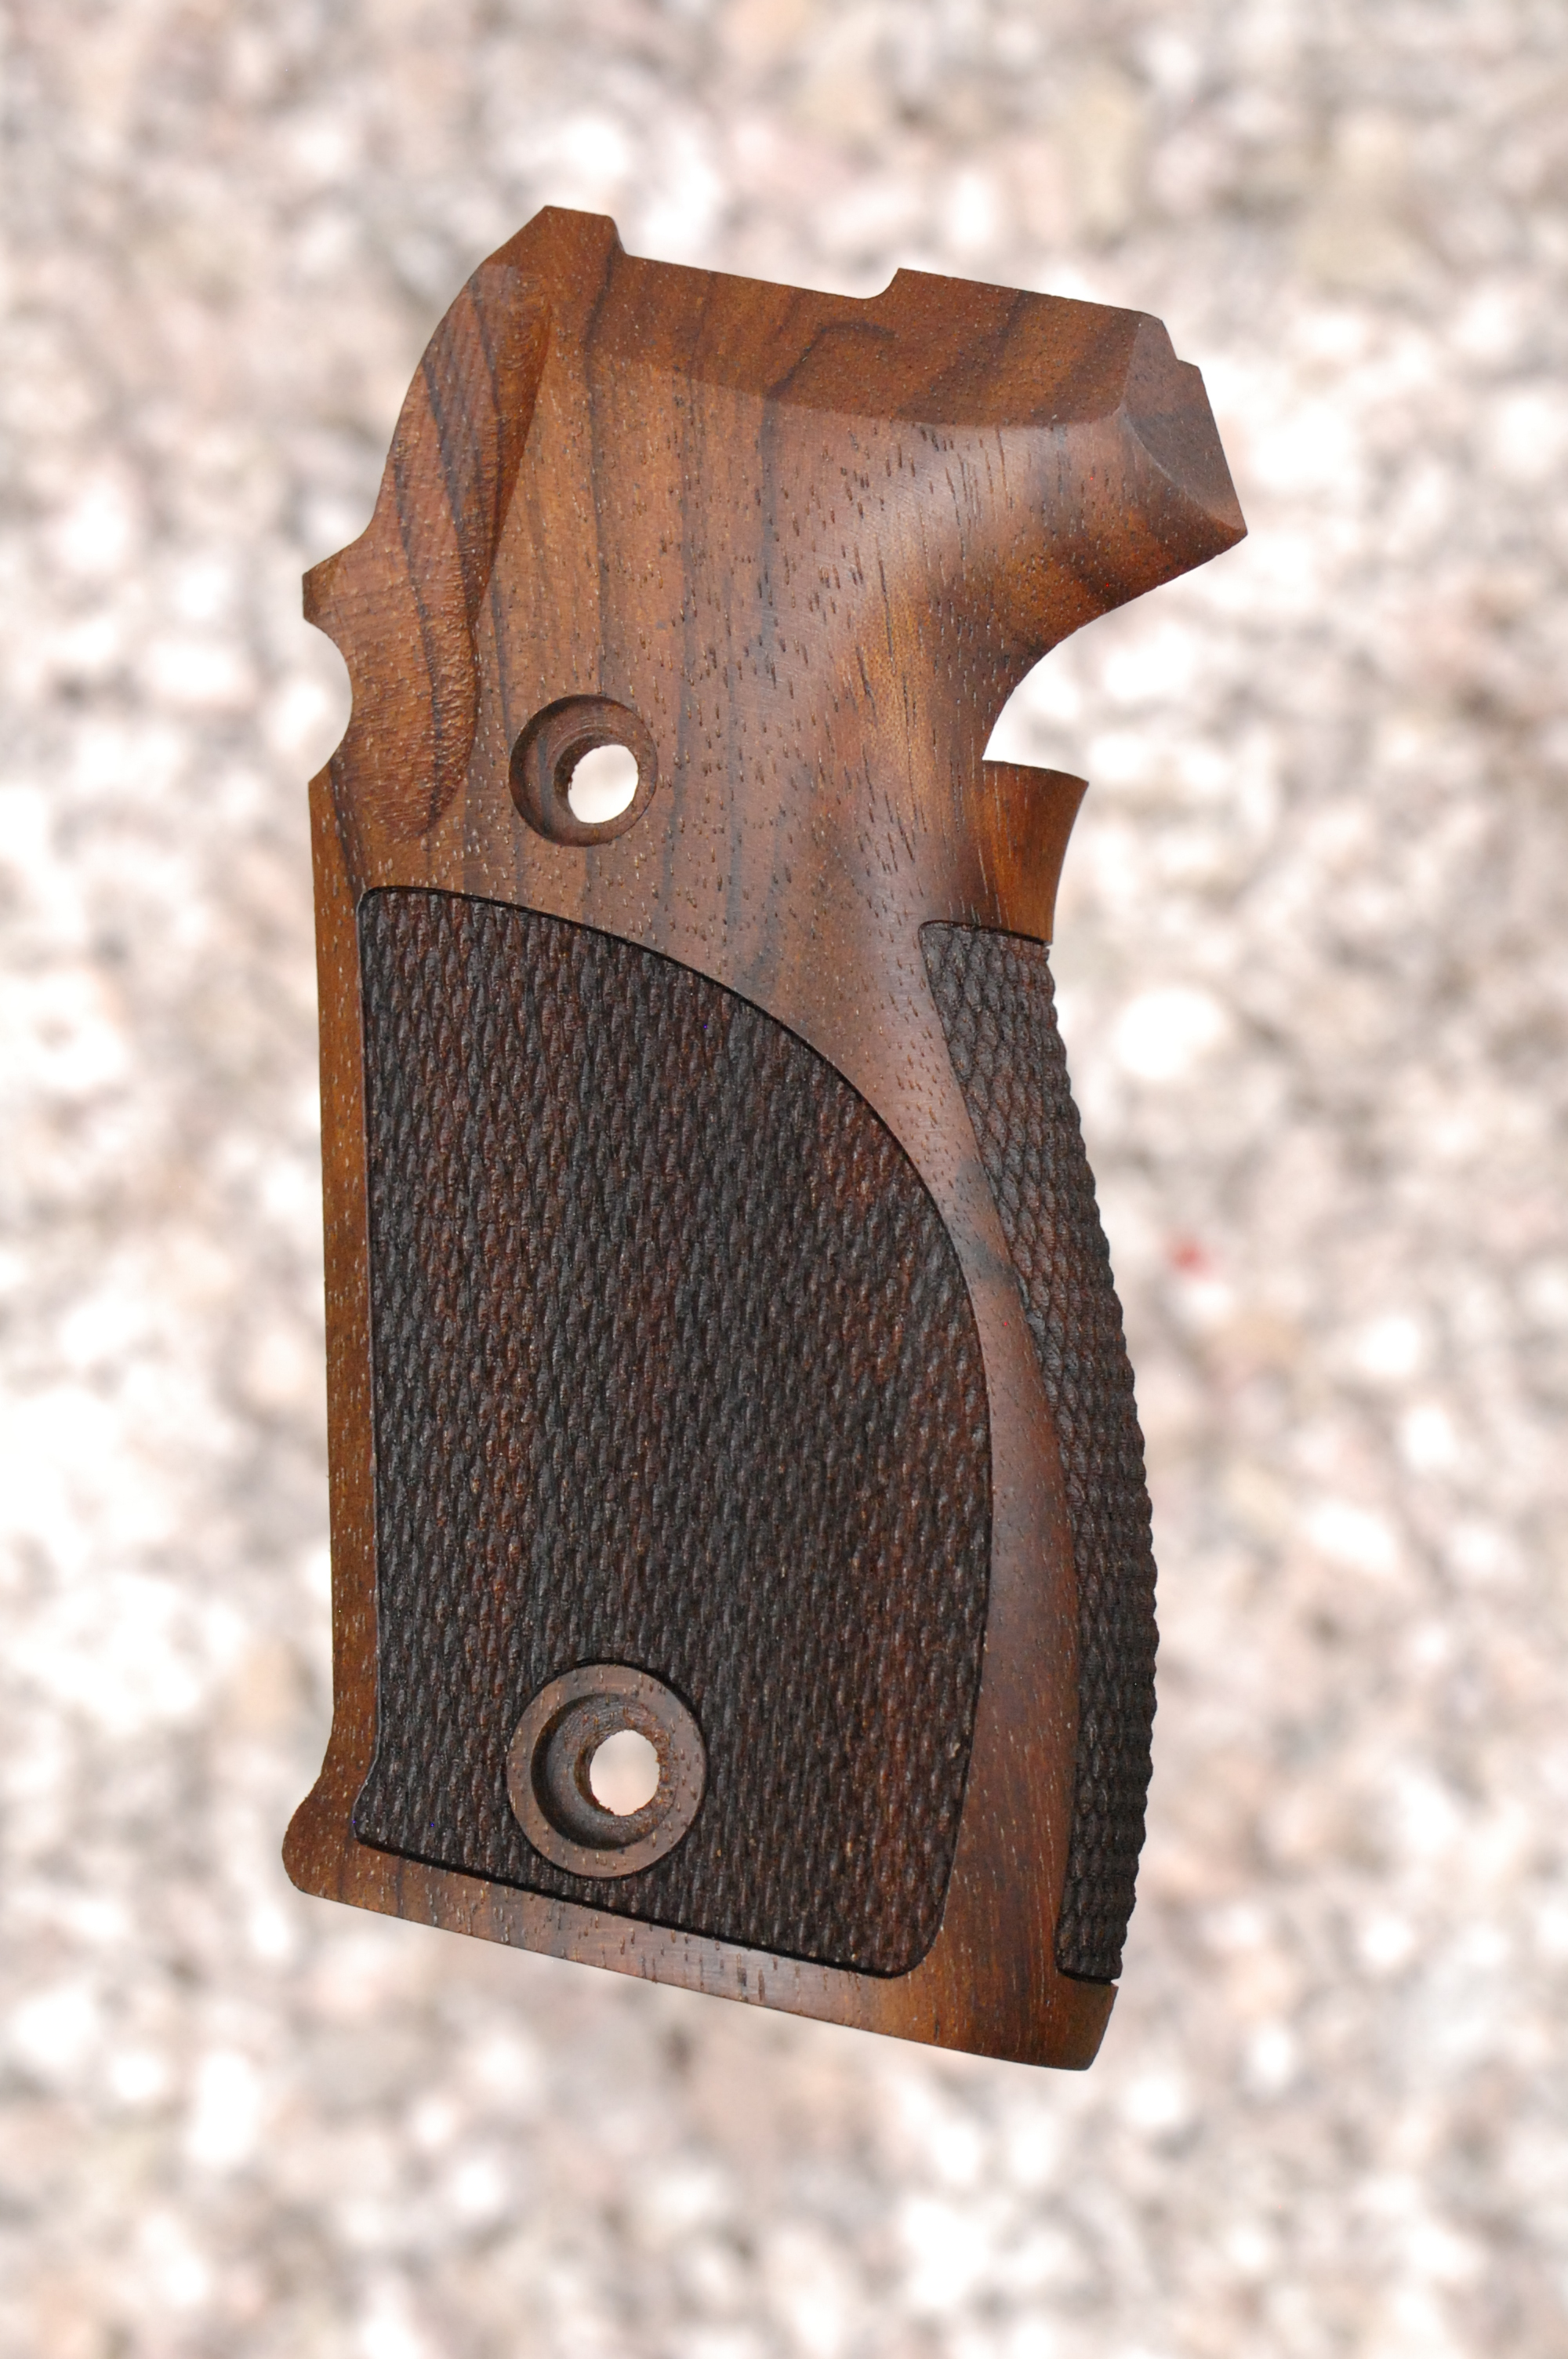 SIG P225/P6 GRIPS (checkered back) - full size